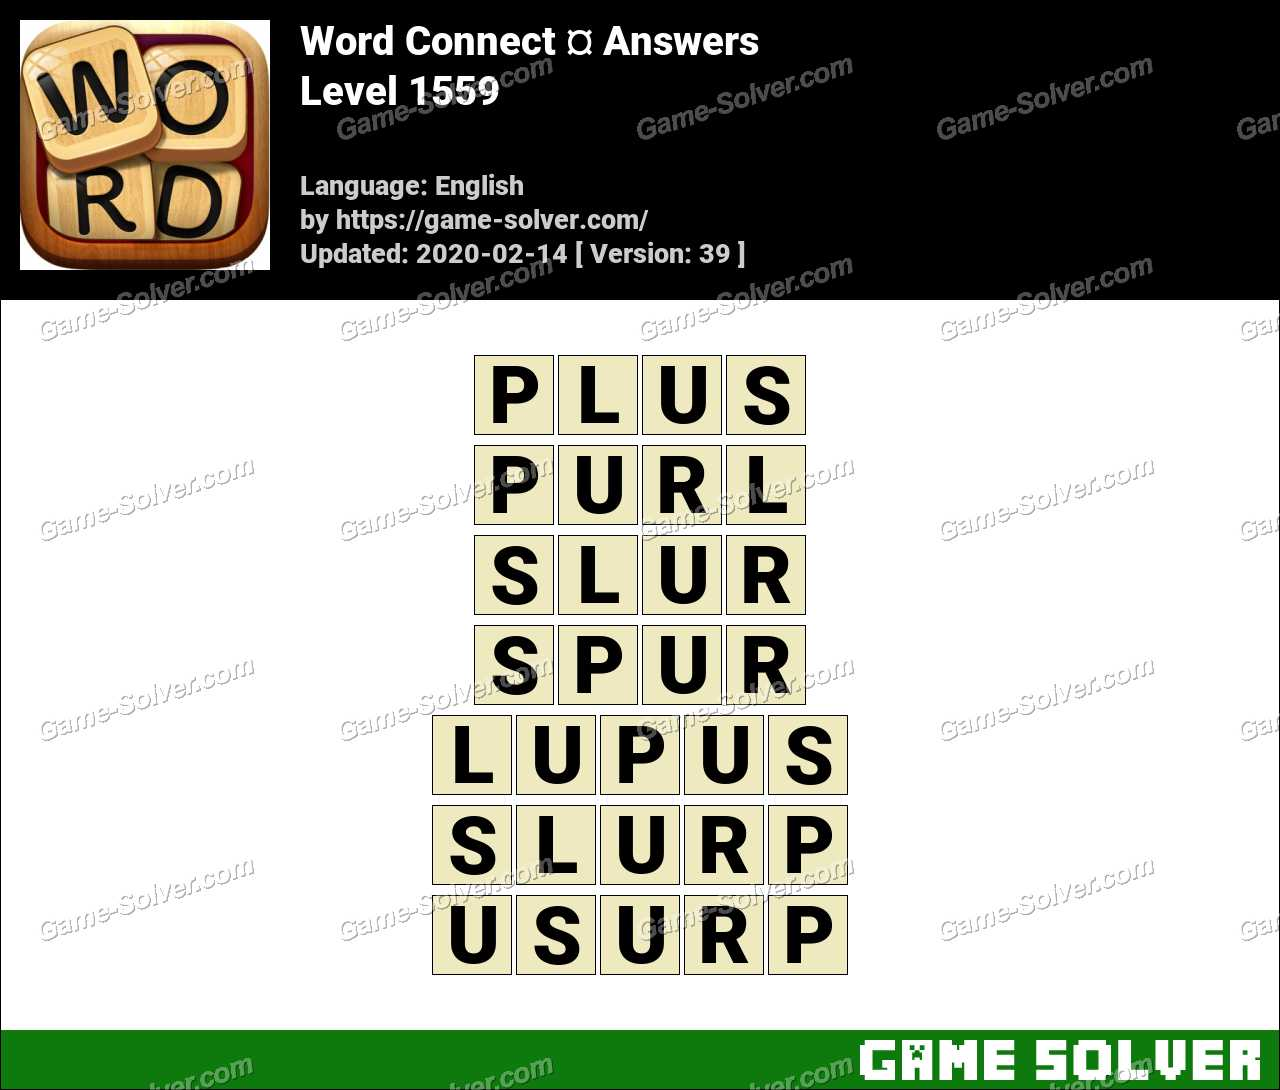 Word Connect Level 1559 Answers